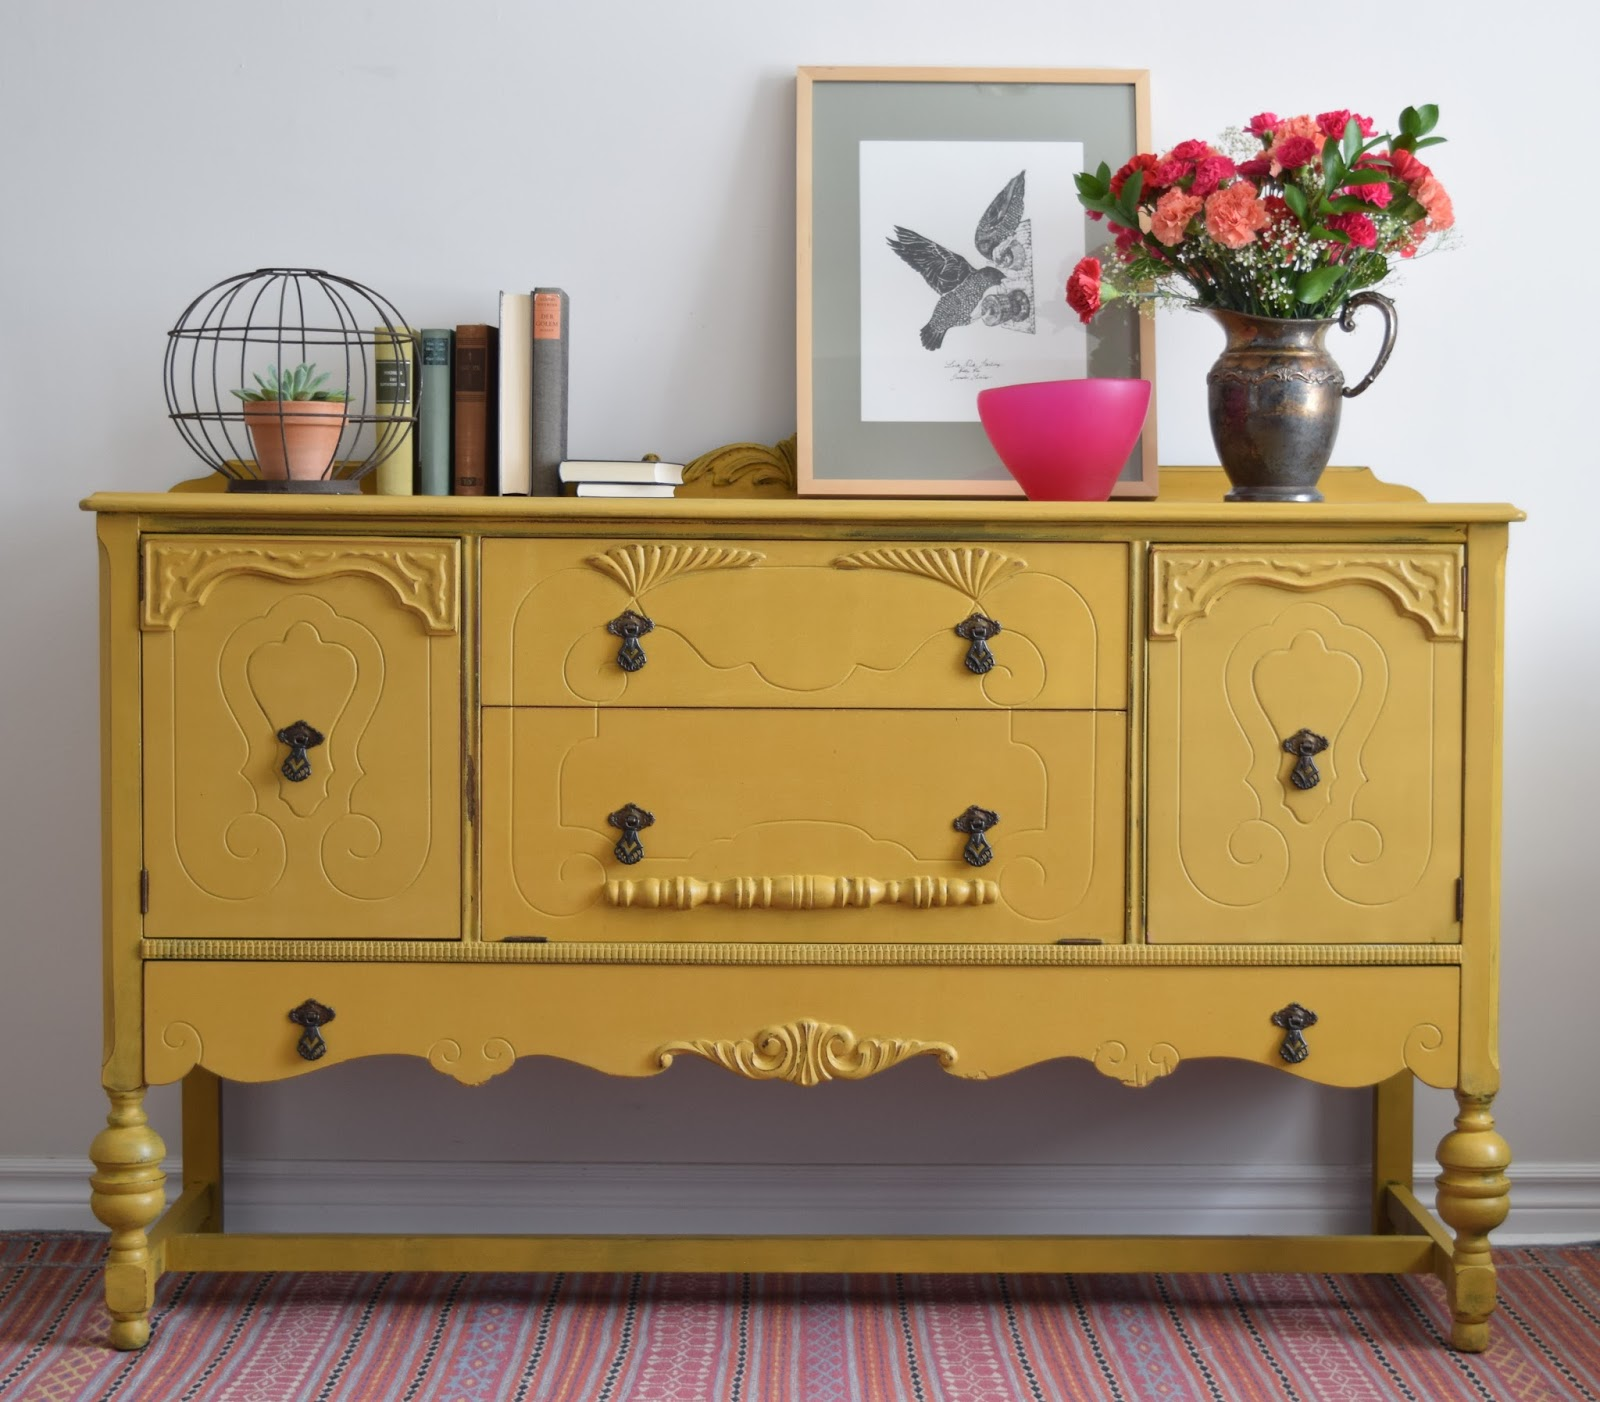 Mustard Kitchen Paint: Poppyseed Creative Living: Mustard Yellow Sideboard